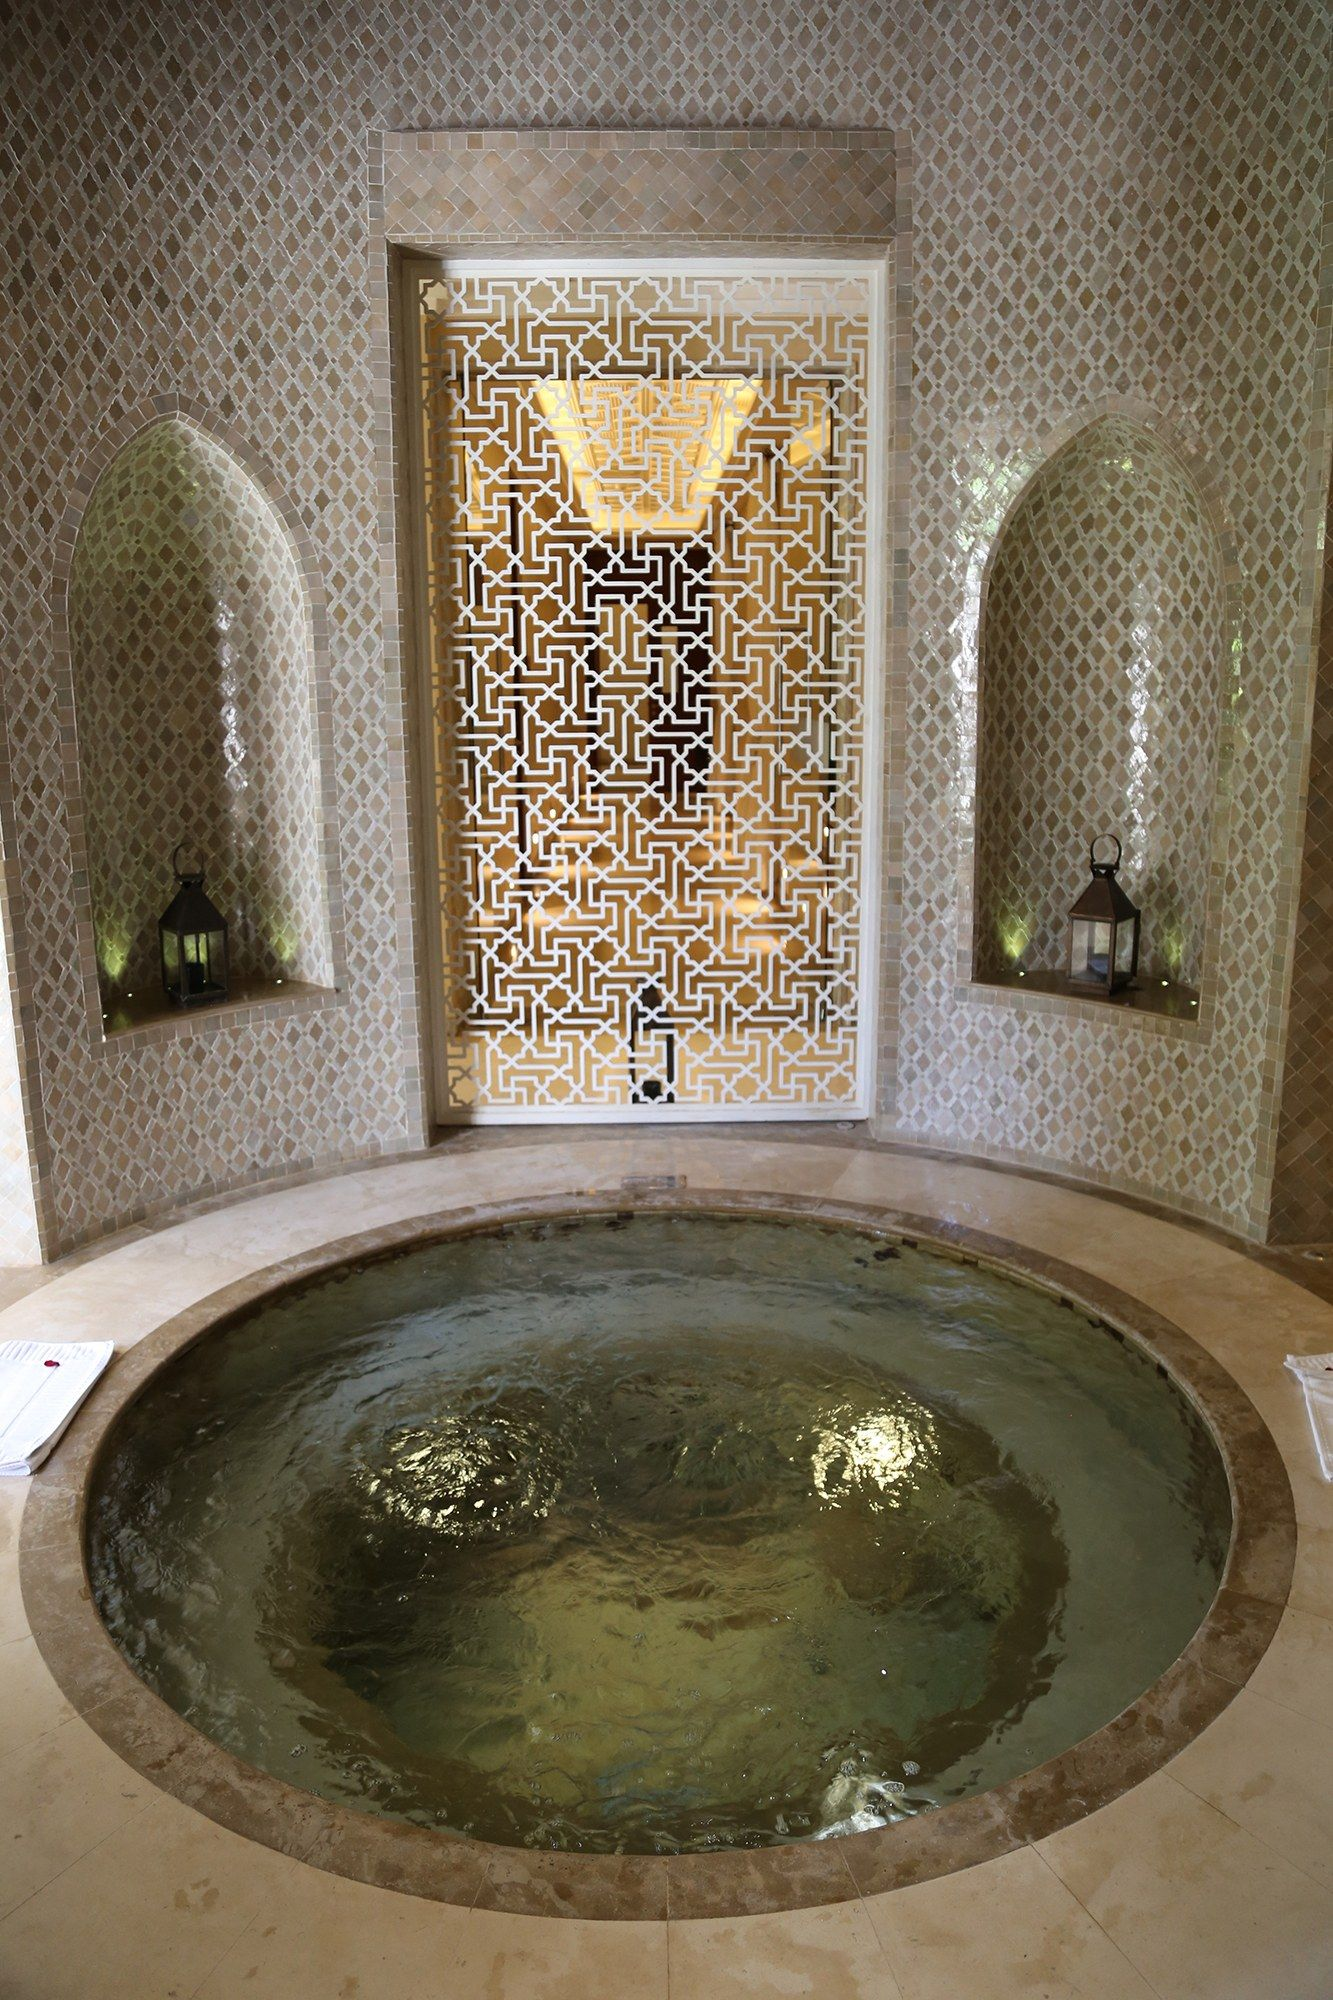 Decoration Hammam Marocain how to experience a hammam in marrakech like a local | israel